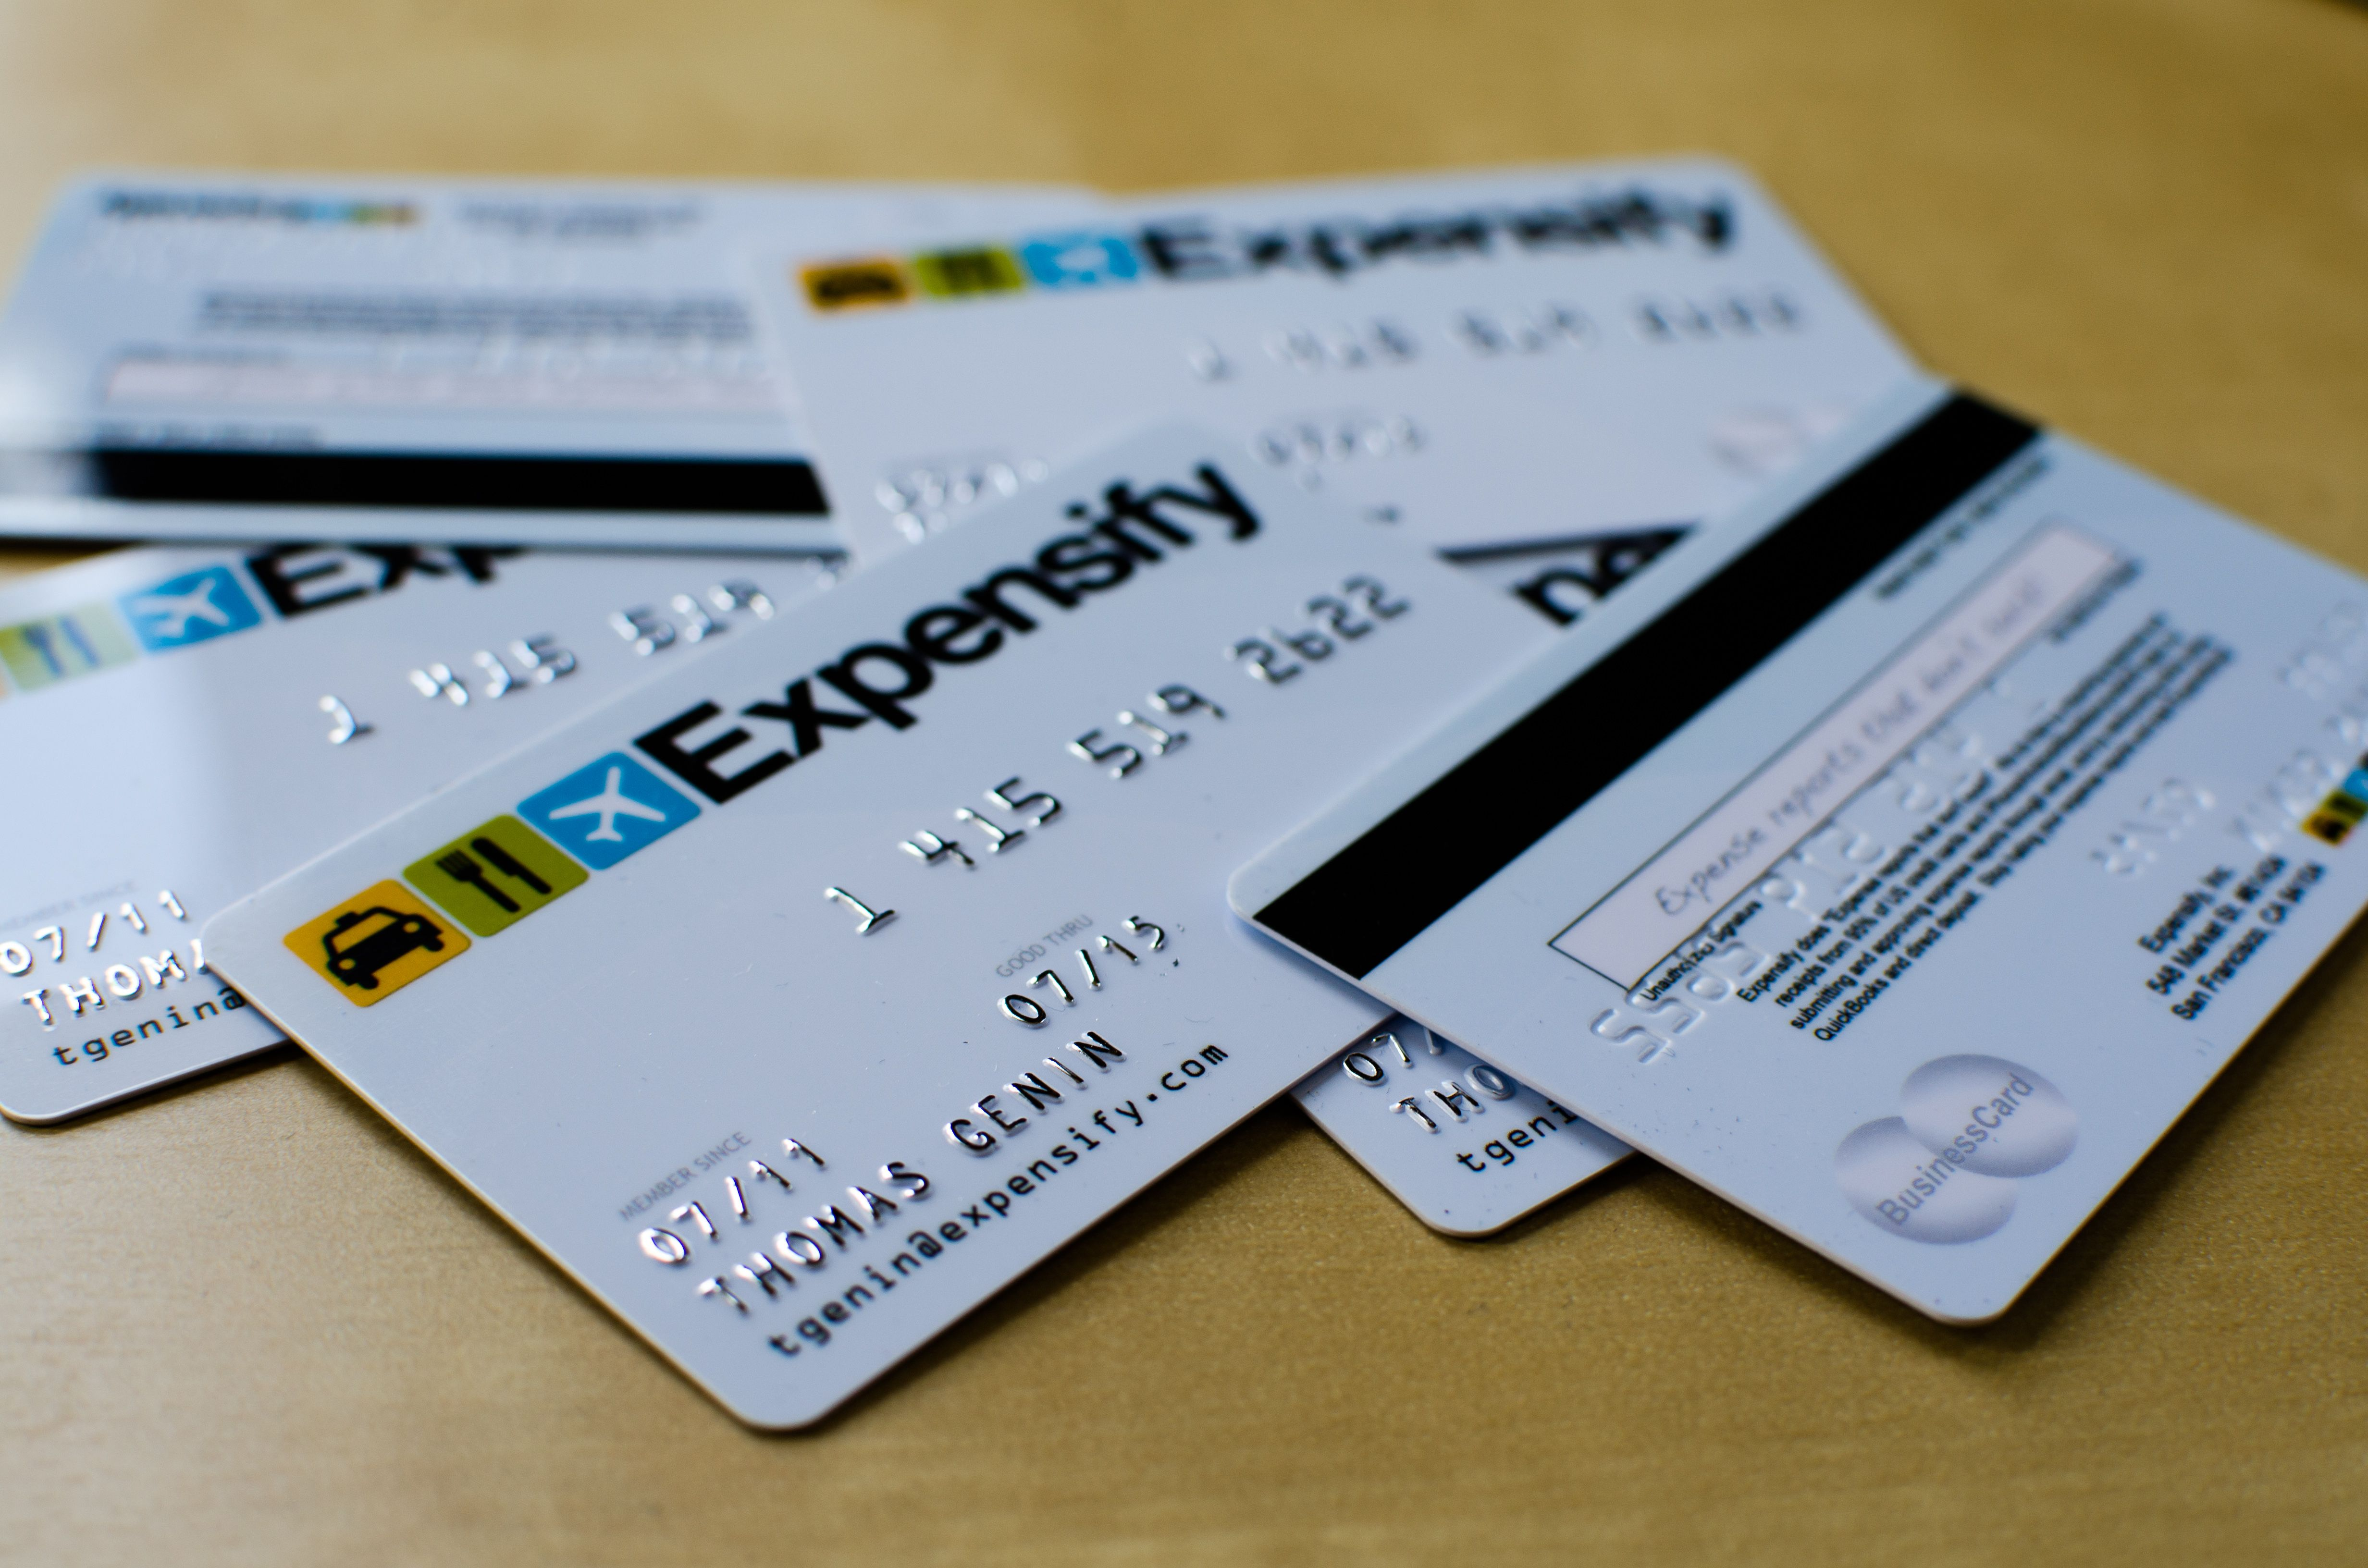 Credit card themed business cards from Expensify - maybe can do a ...